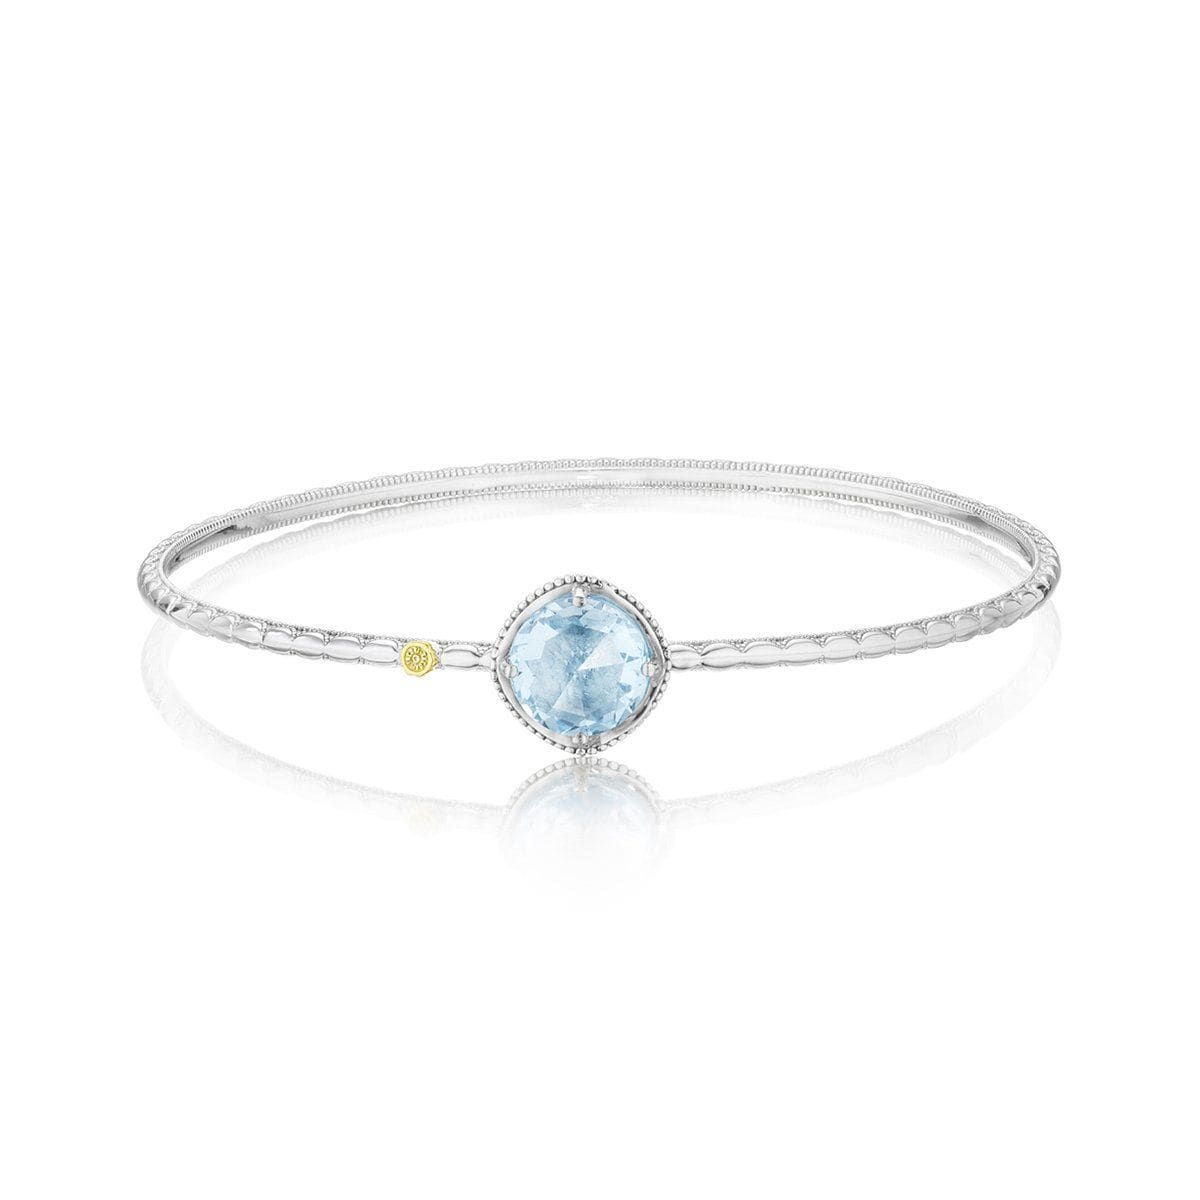 Silver Sky Blue Topaz Bangle - SB12302-Tacori-Renee Taylor Gallery